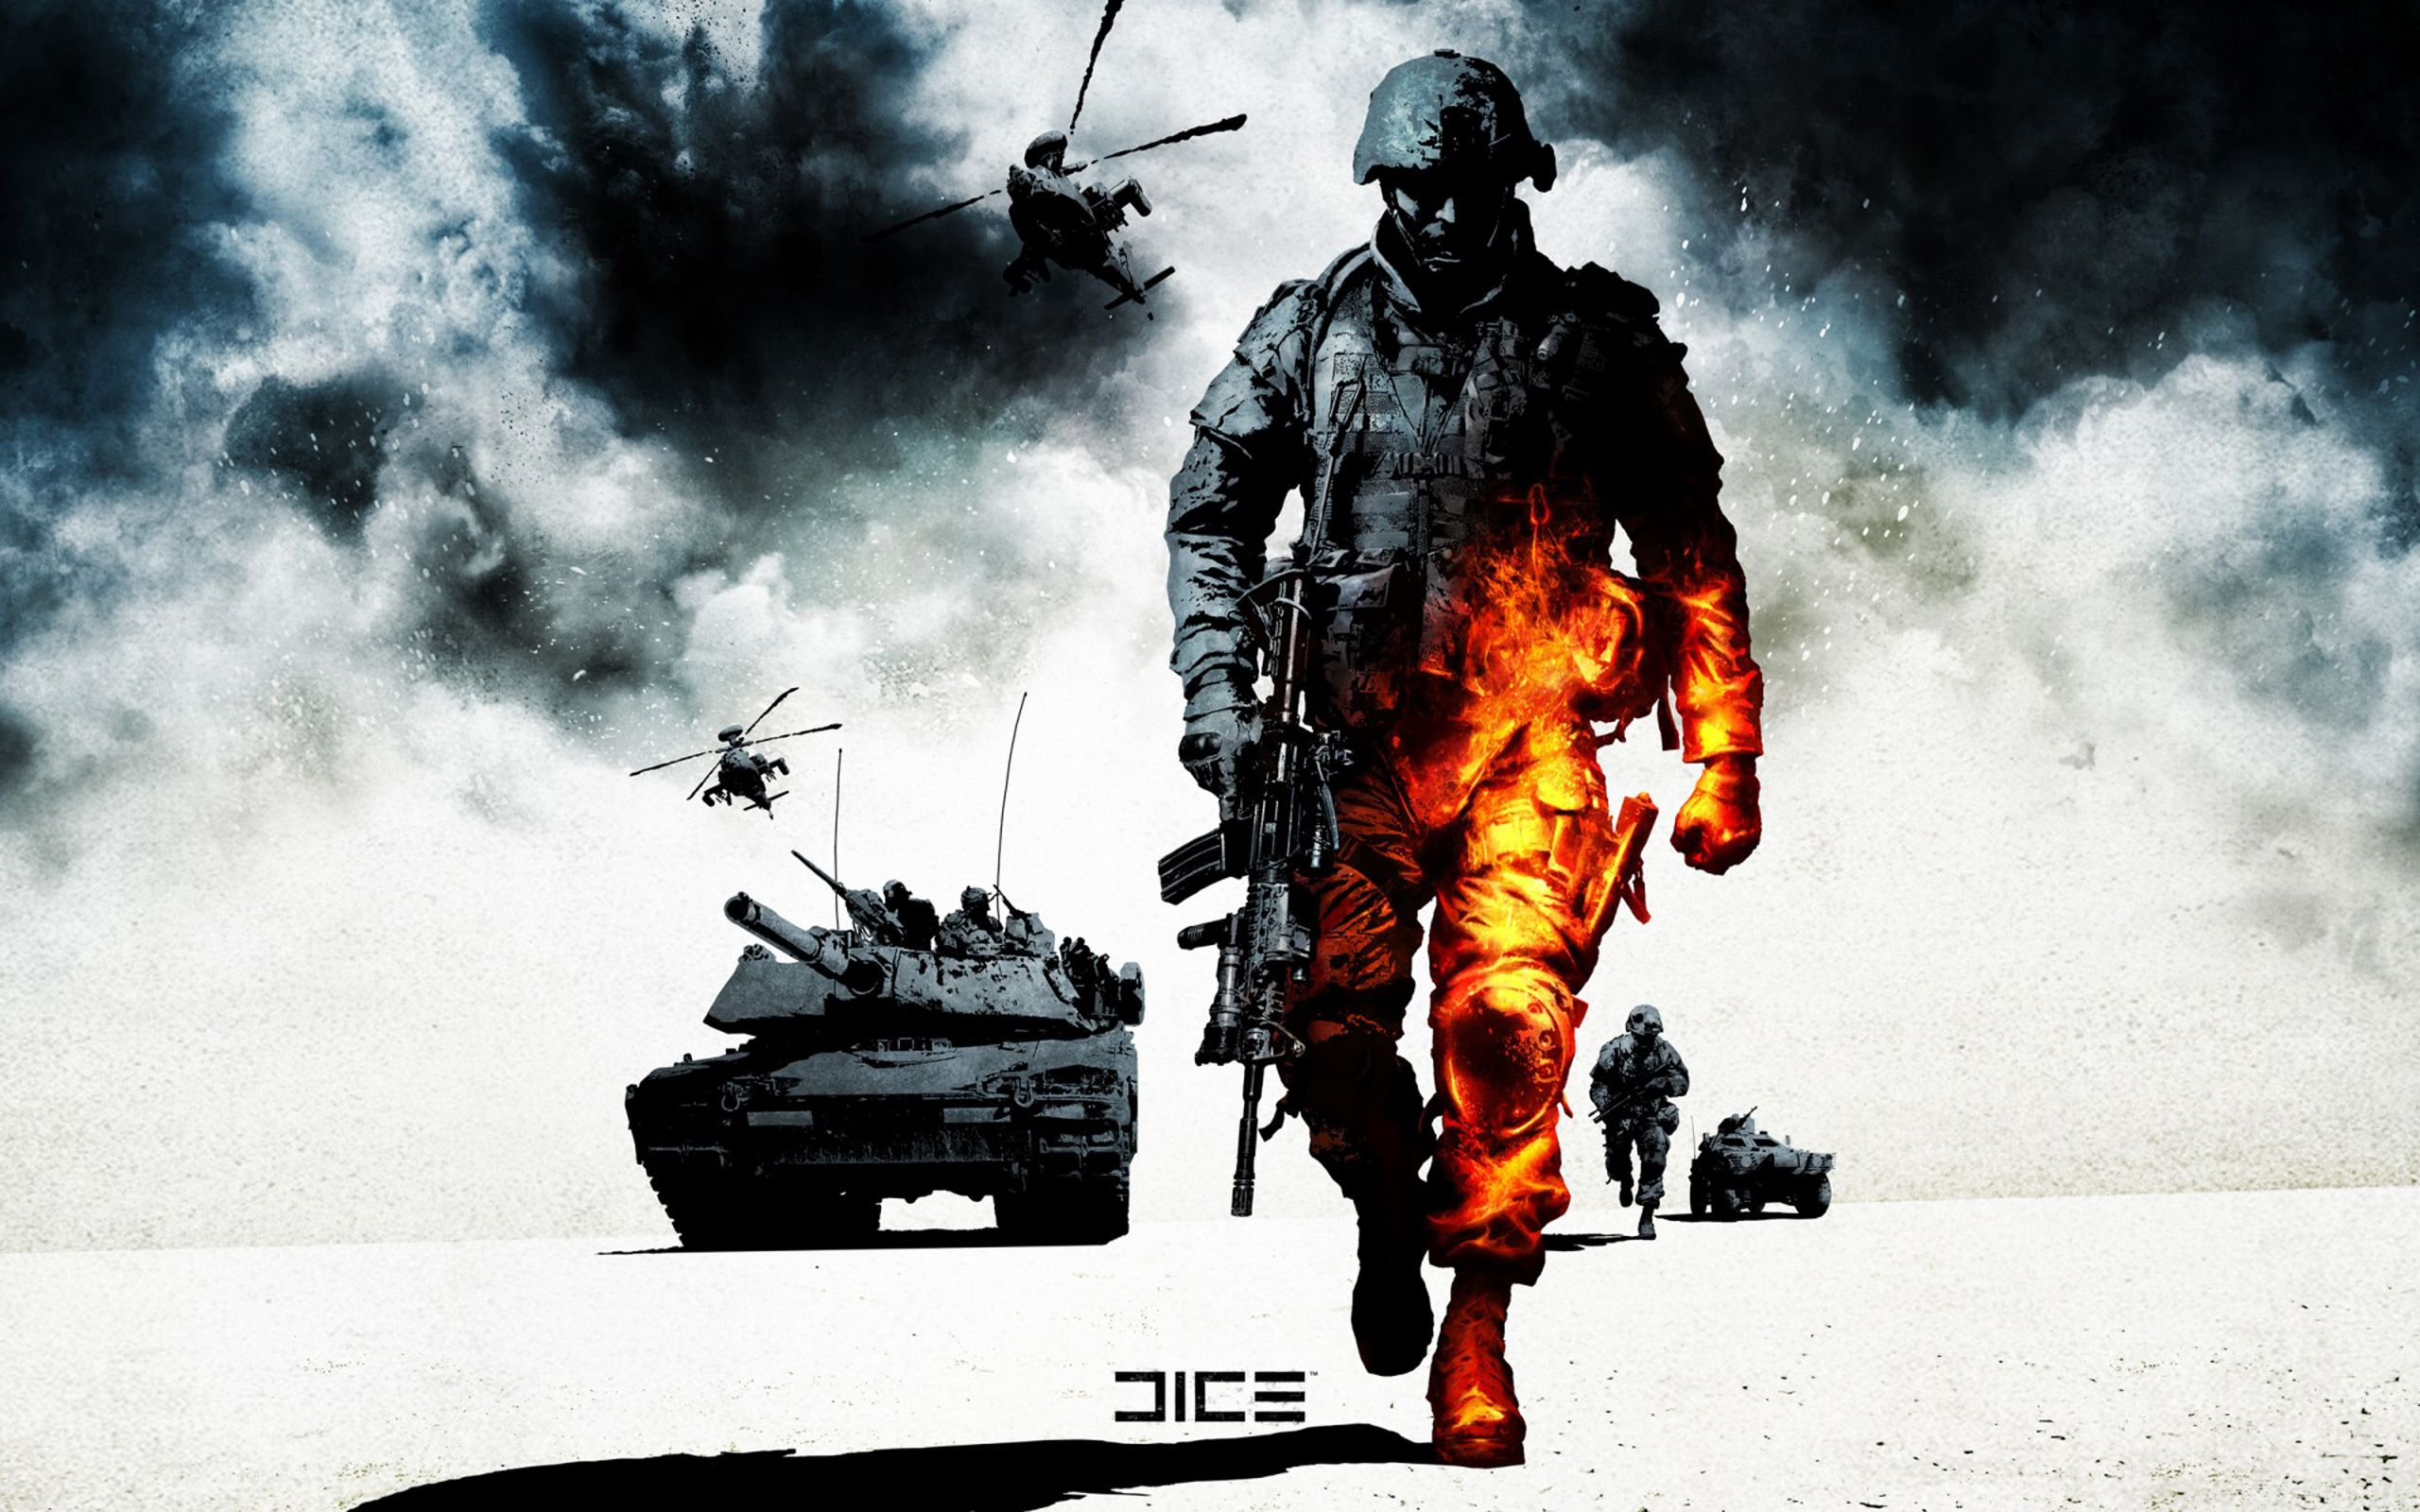 Battlefield Bad Company 2 Http Es Wikipedia Org Wiki